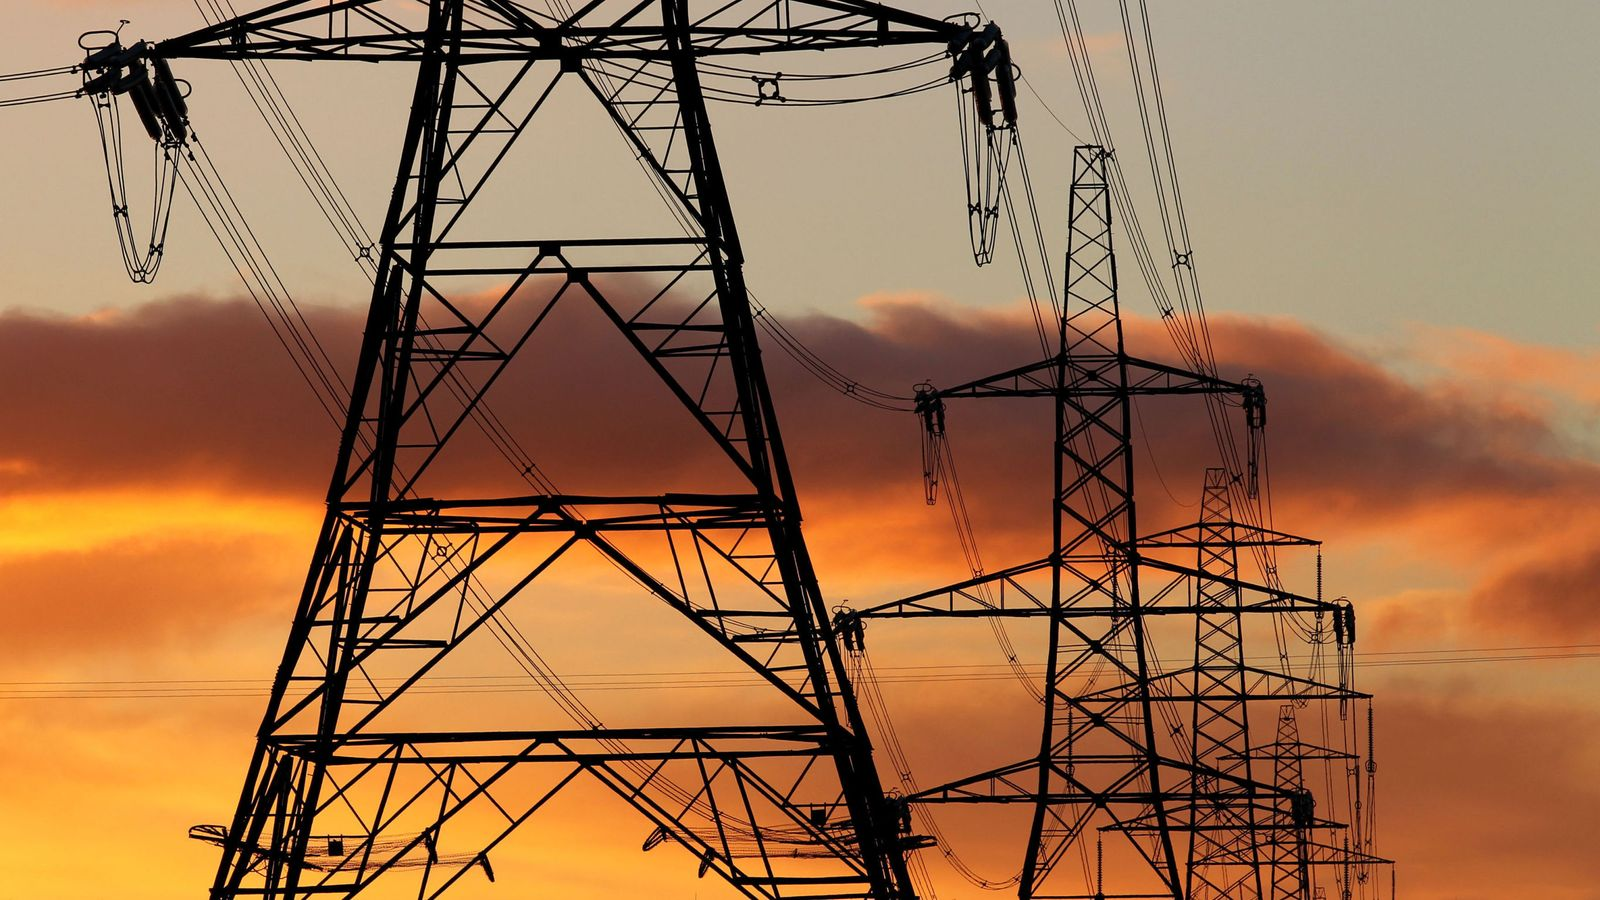 New battery technology could cut energy bills by up to £40bn by 2050, says Ofgem